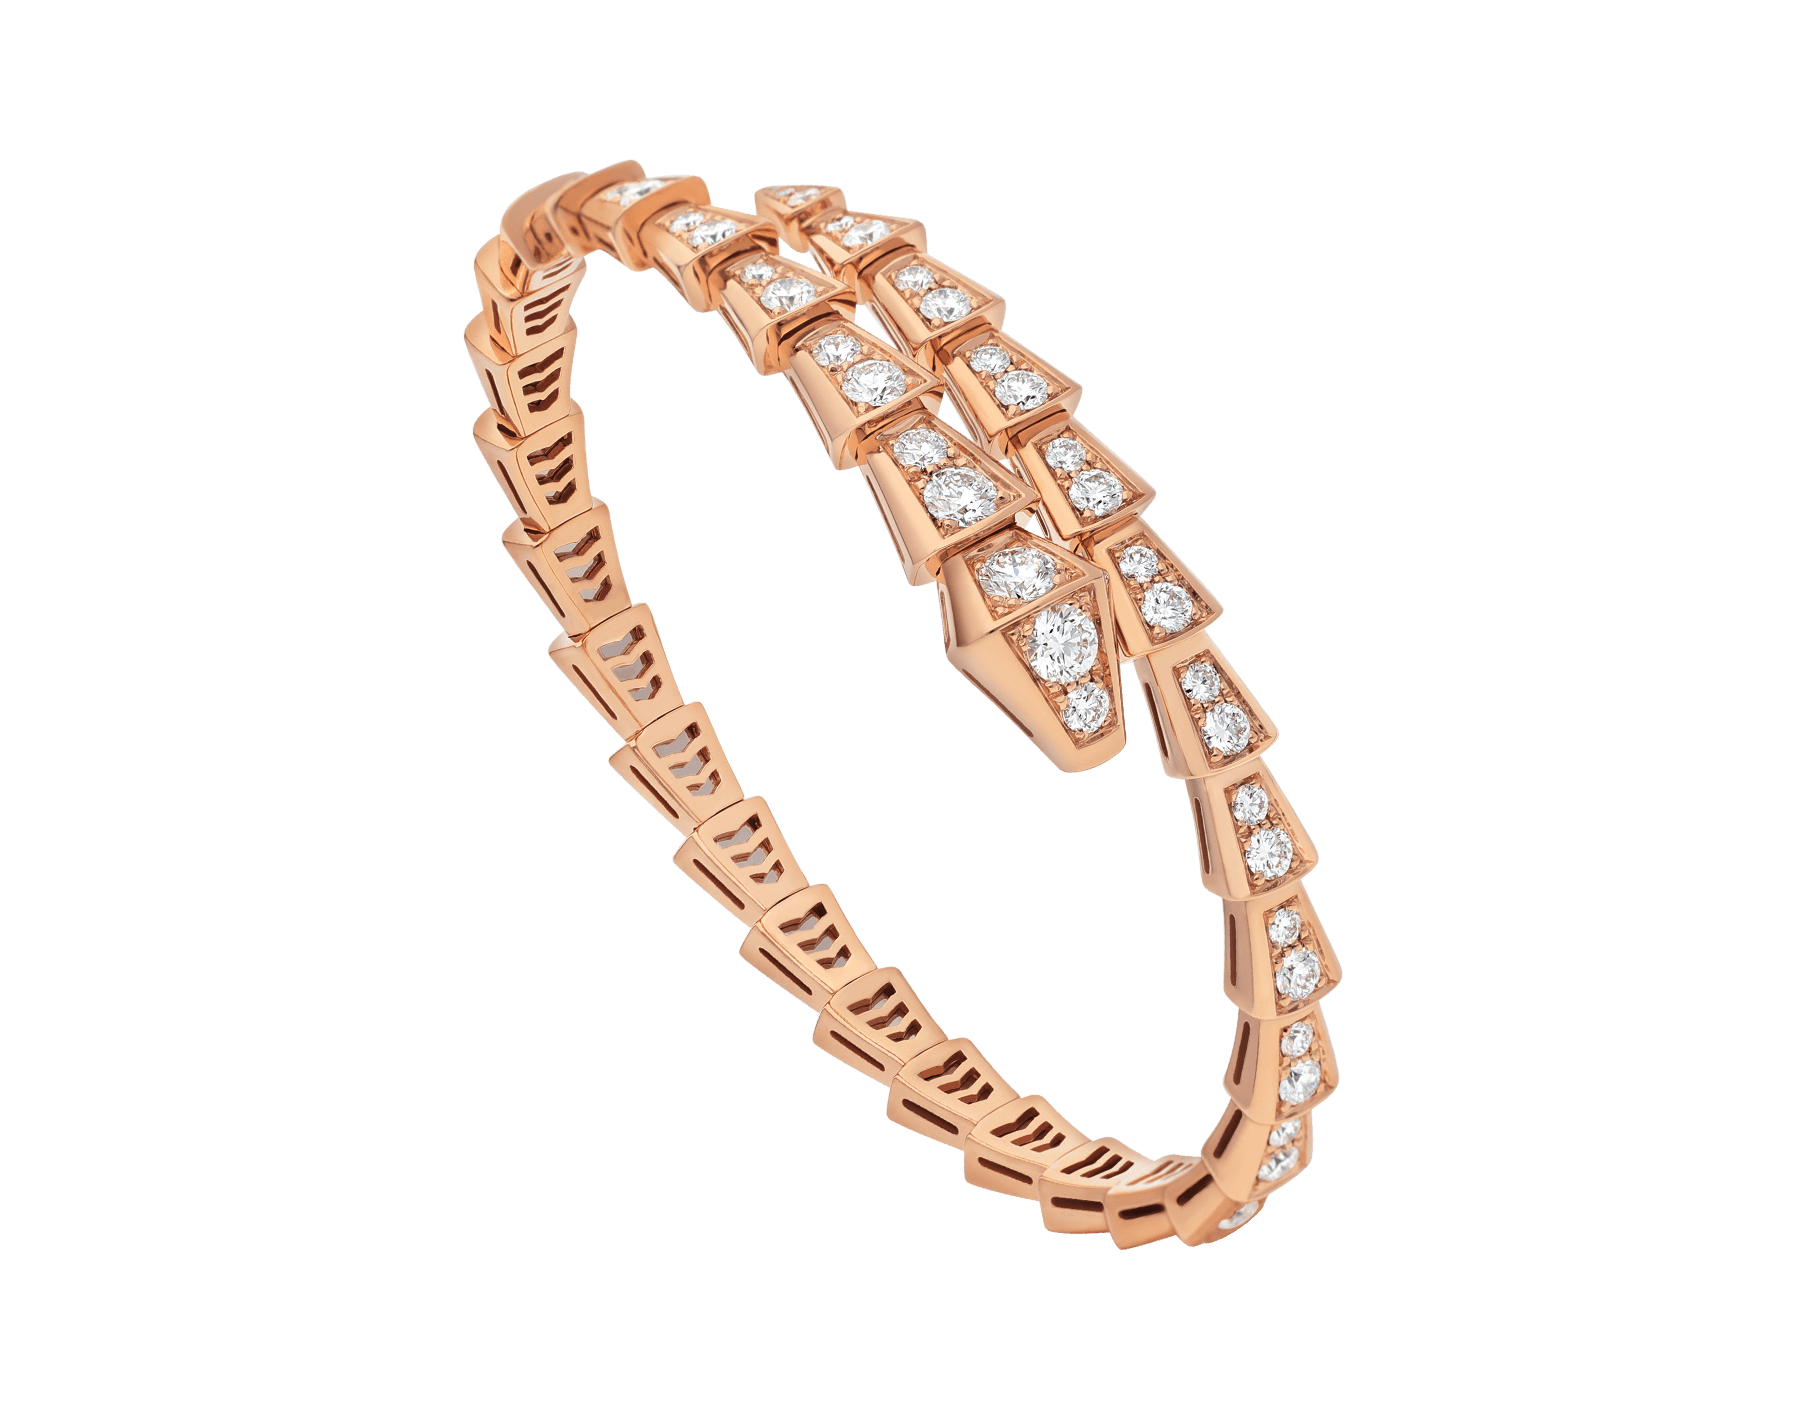 Serpenti Viper one-coil thin bracelet in 18 kt rose gold and full pavé diamonds. BR858084 image 1